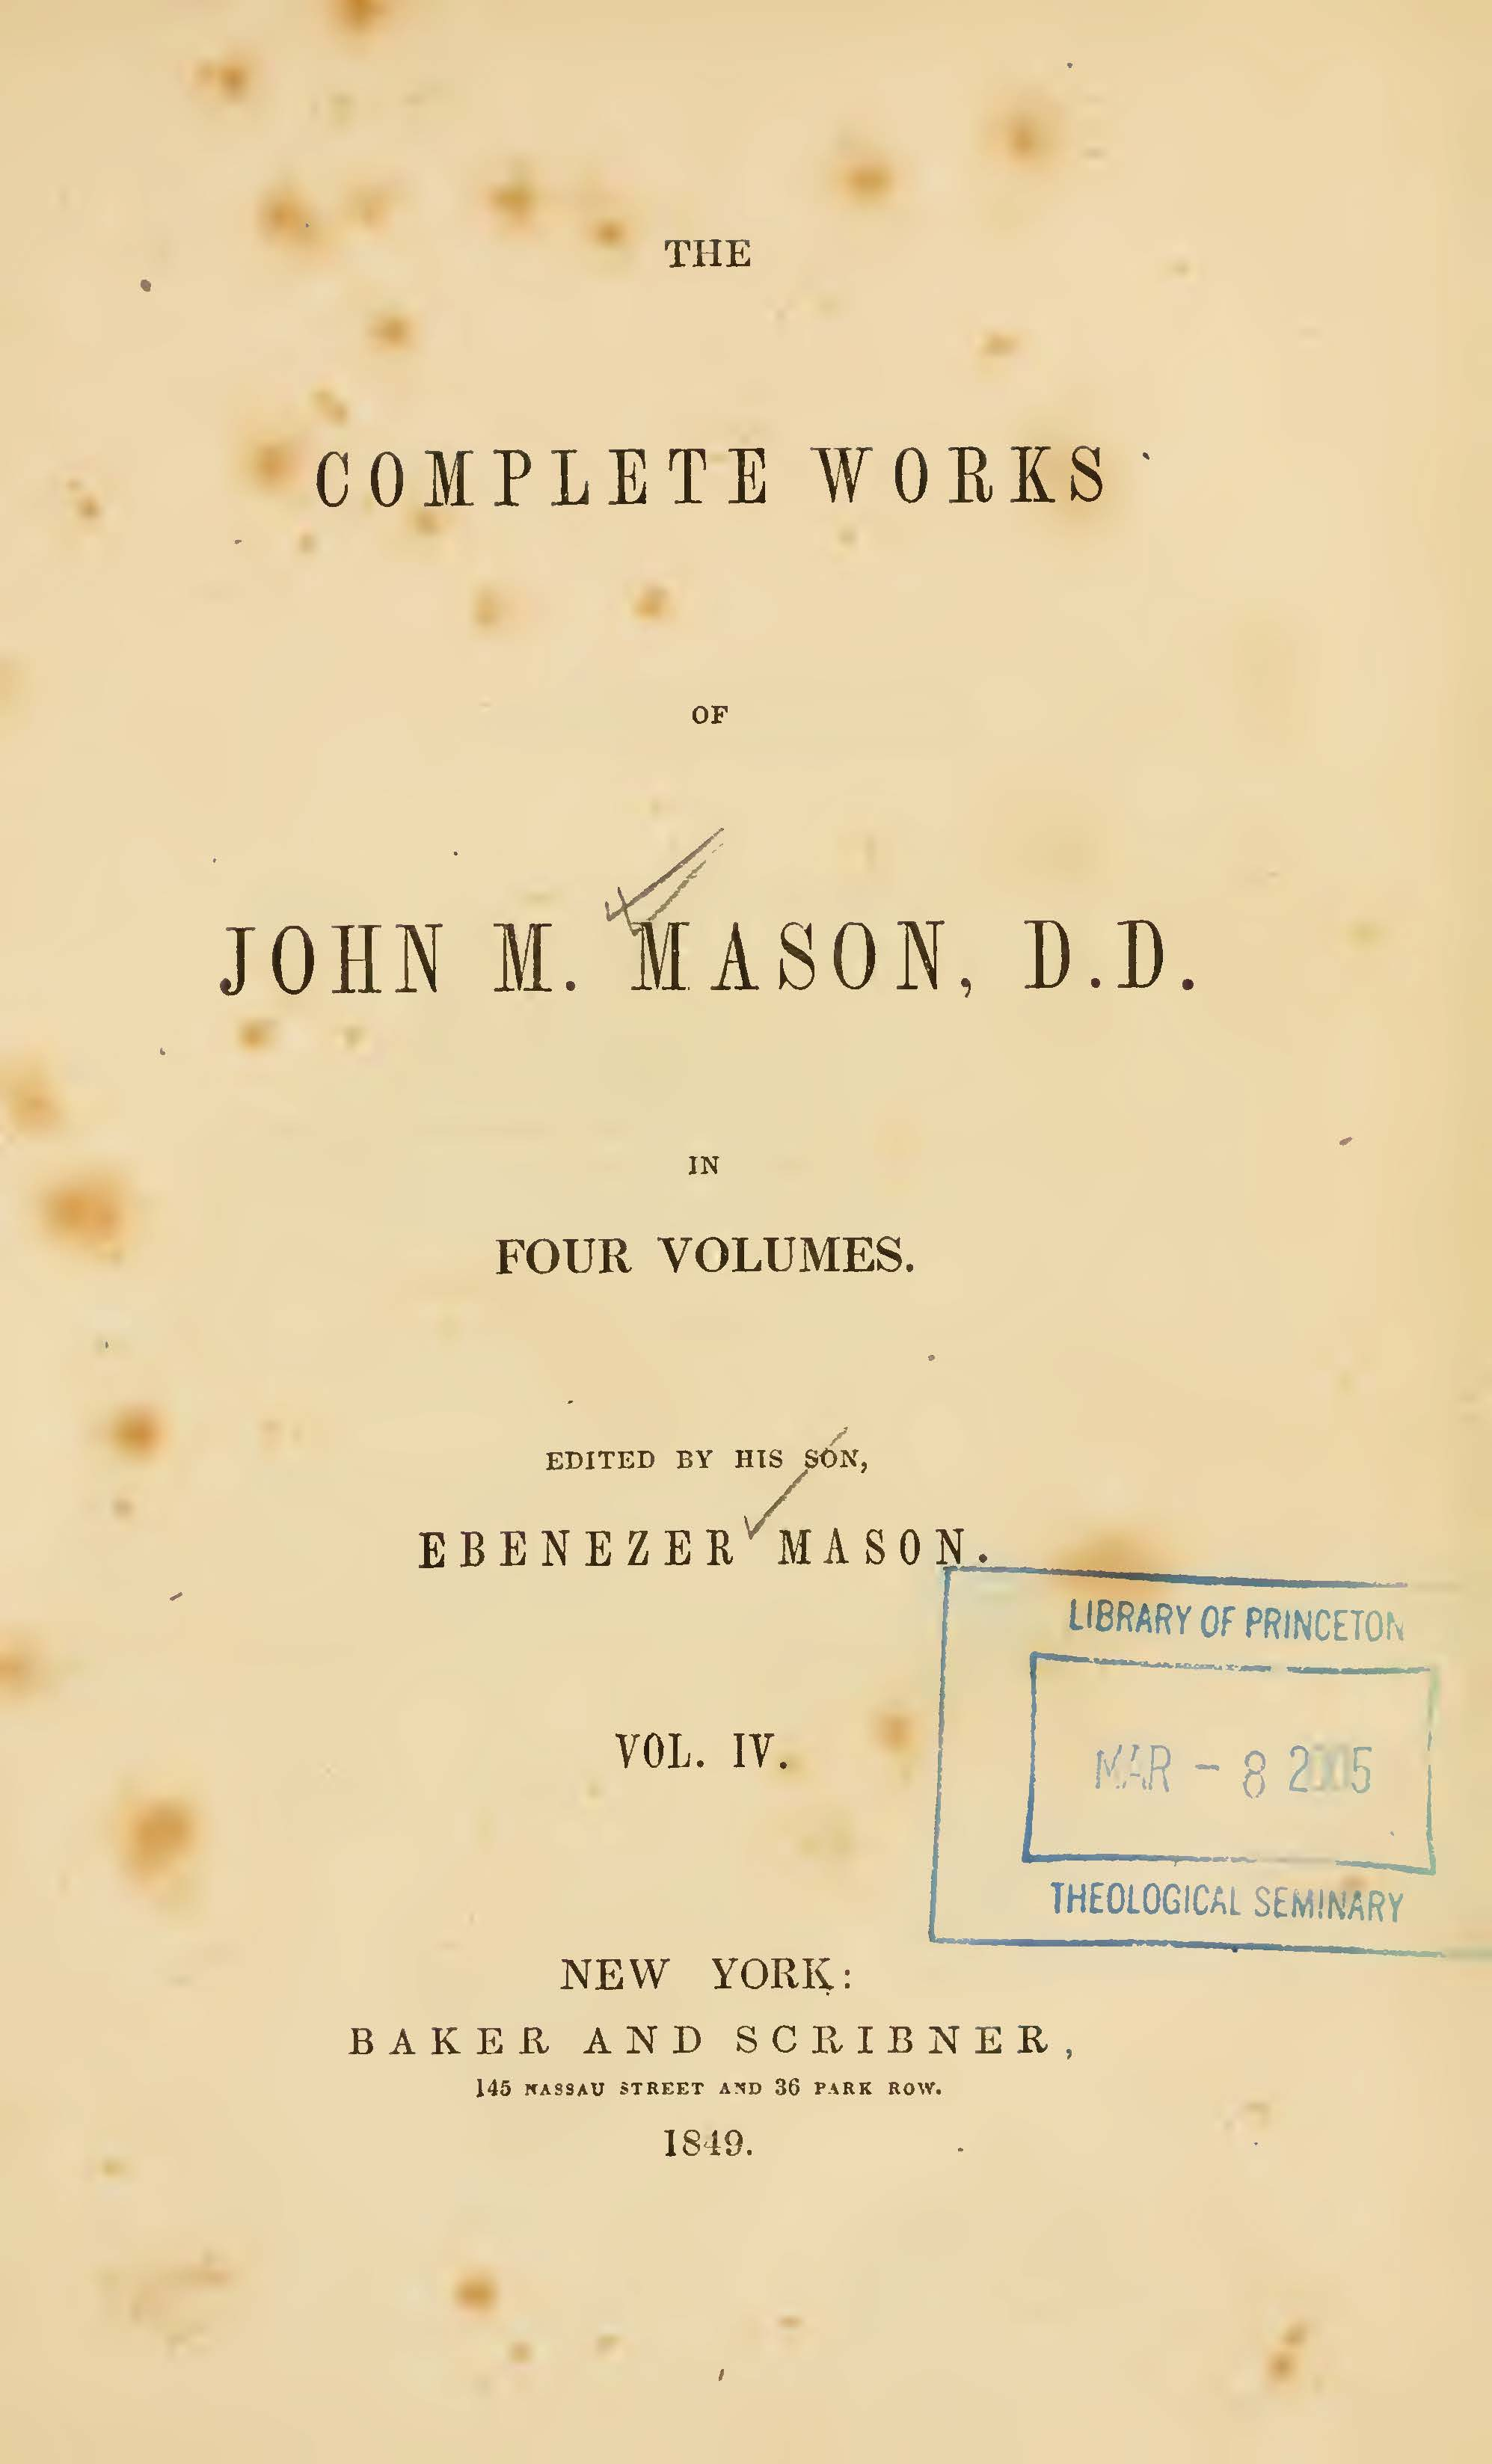 Mason, John Mitchell, The Complete Works of John M. Mason, D.D., Vol. 4 Title Page.jpg